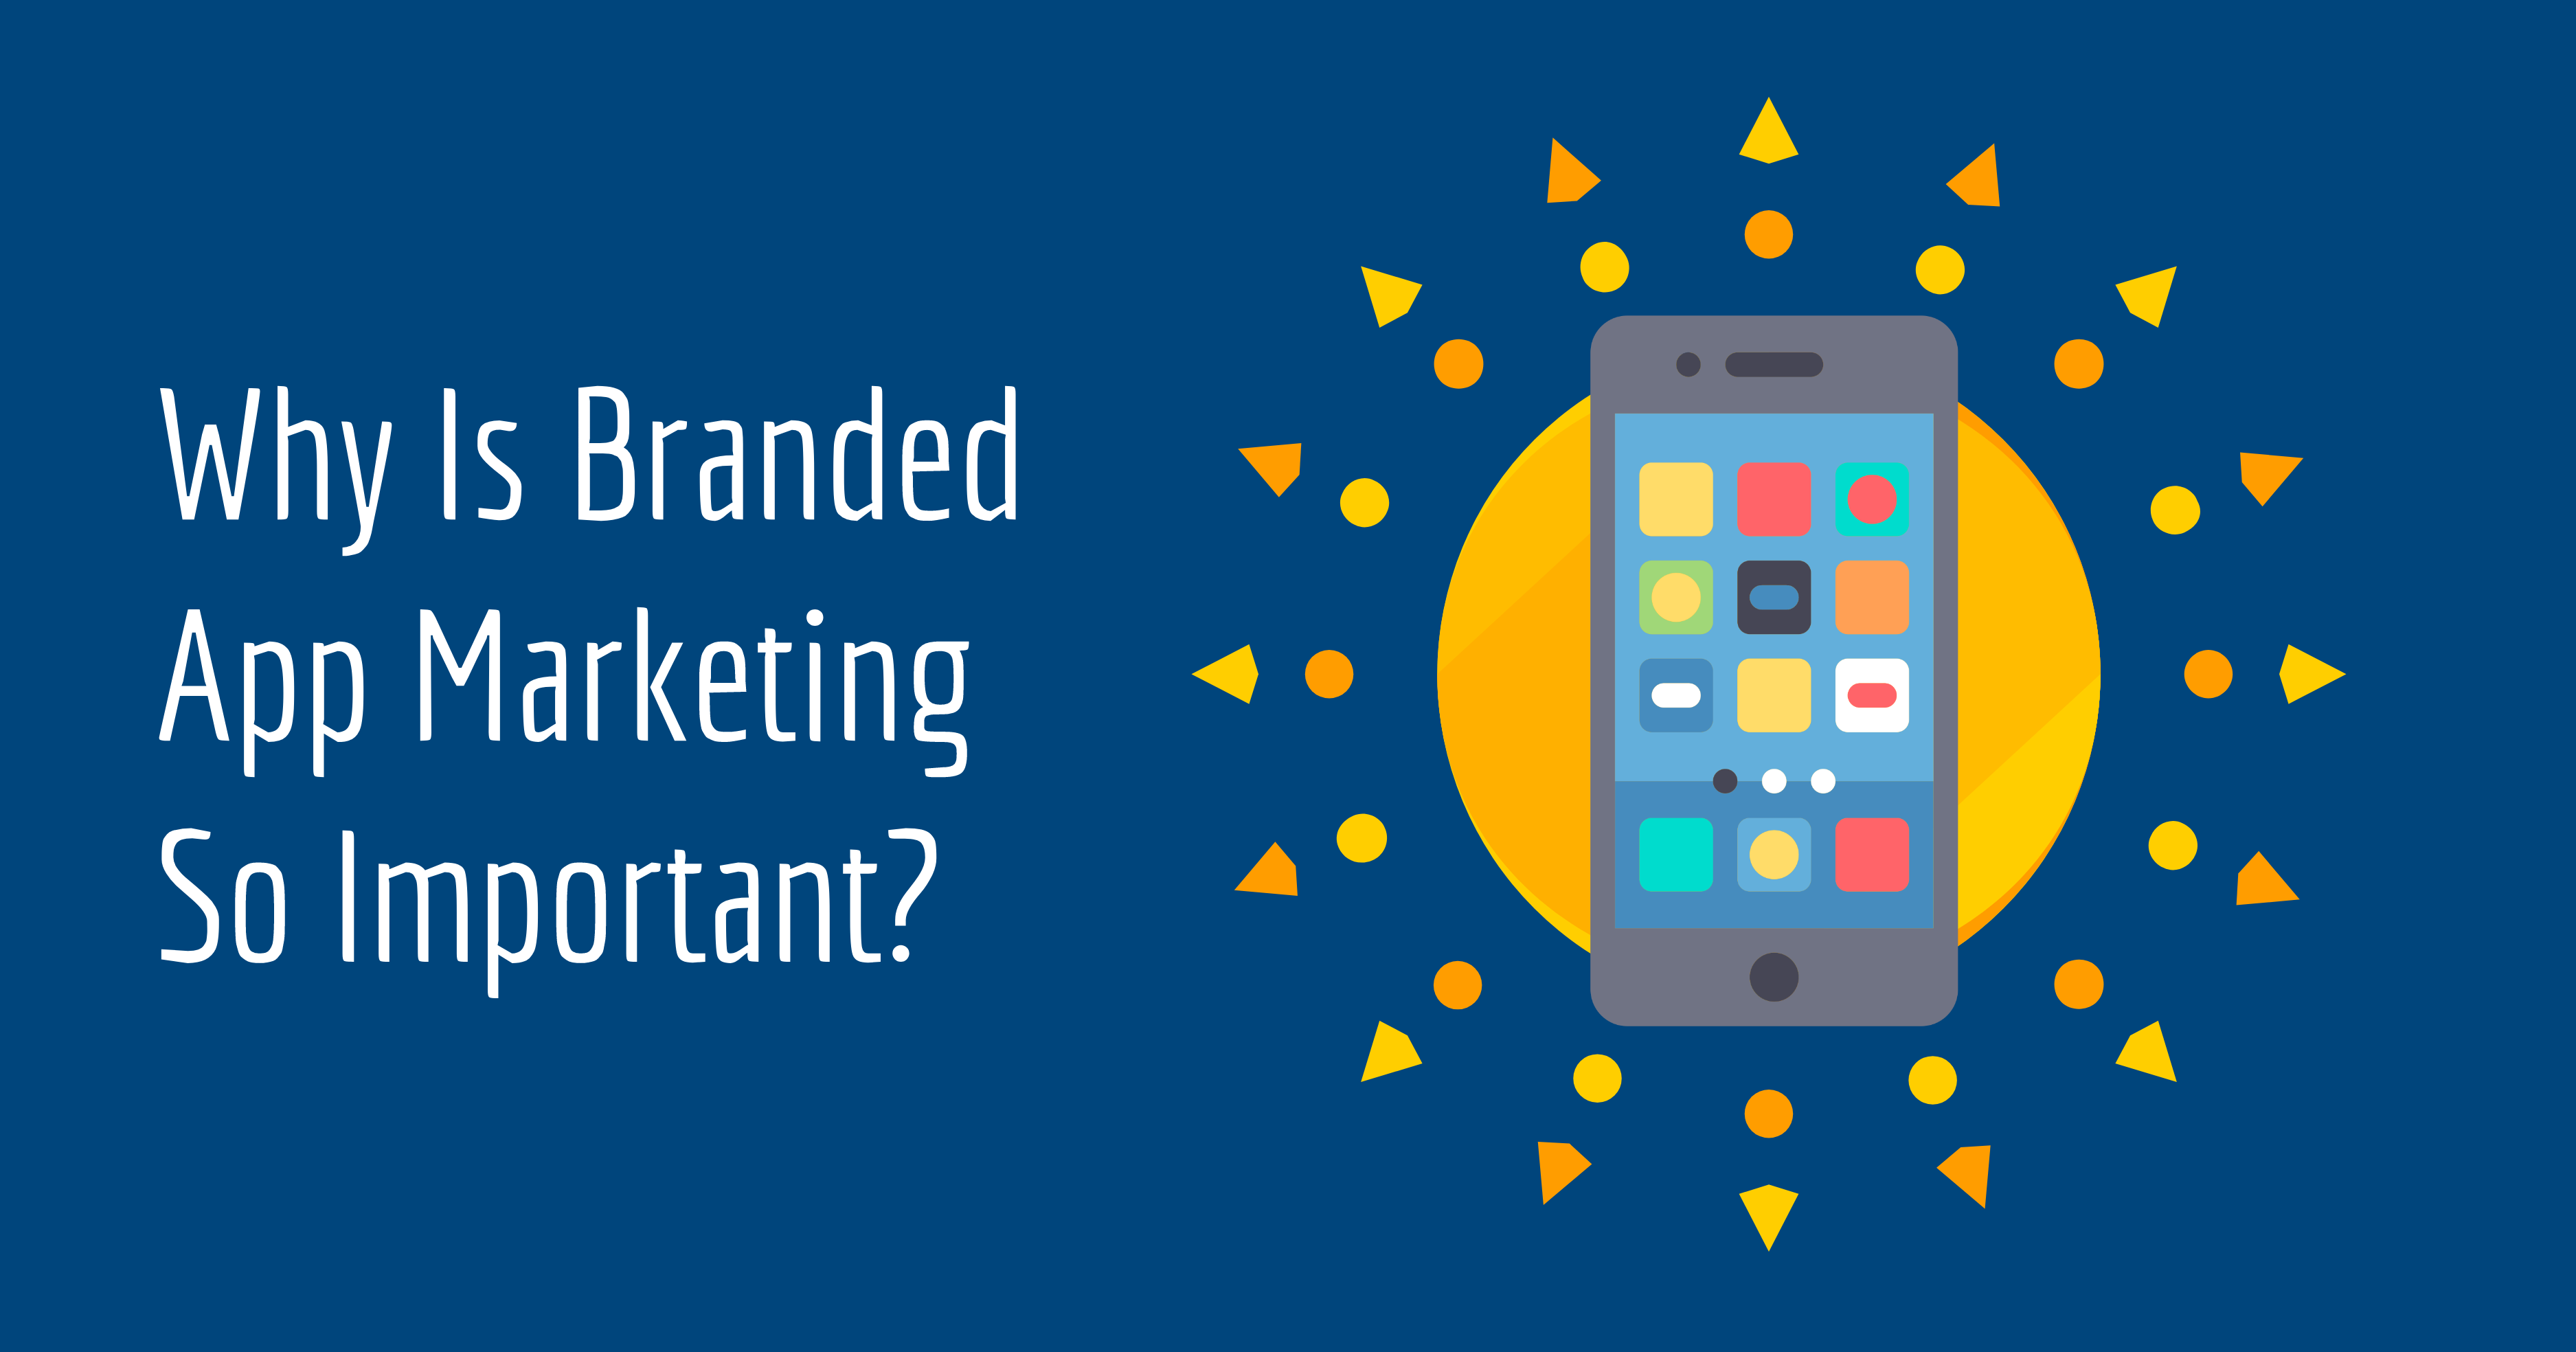 Why Is Branded App Marketing So Important?